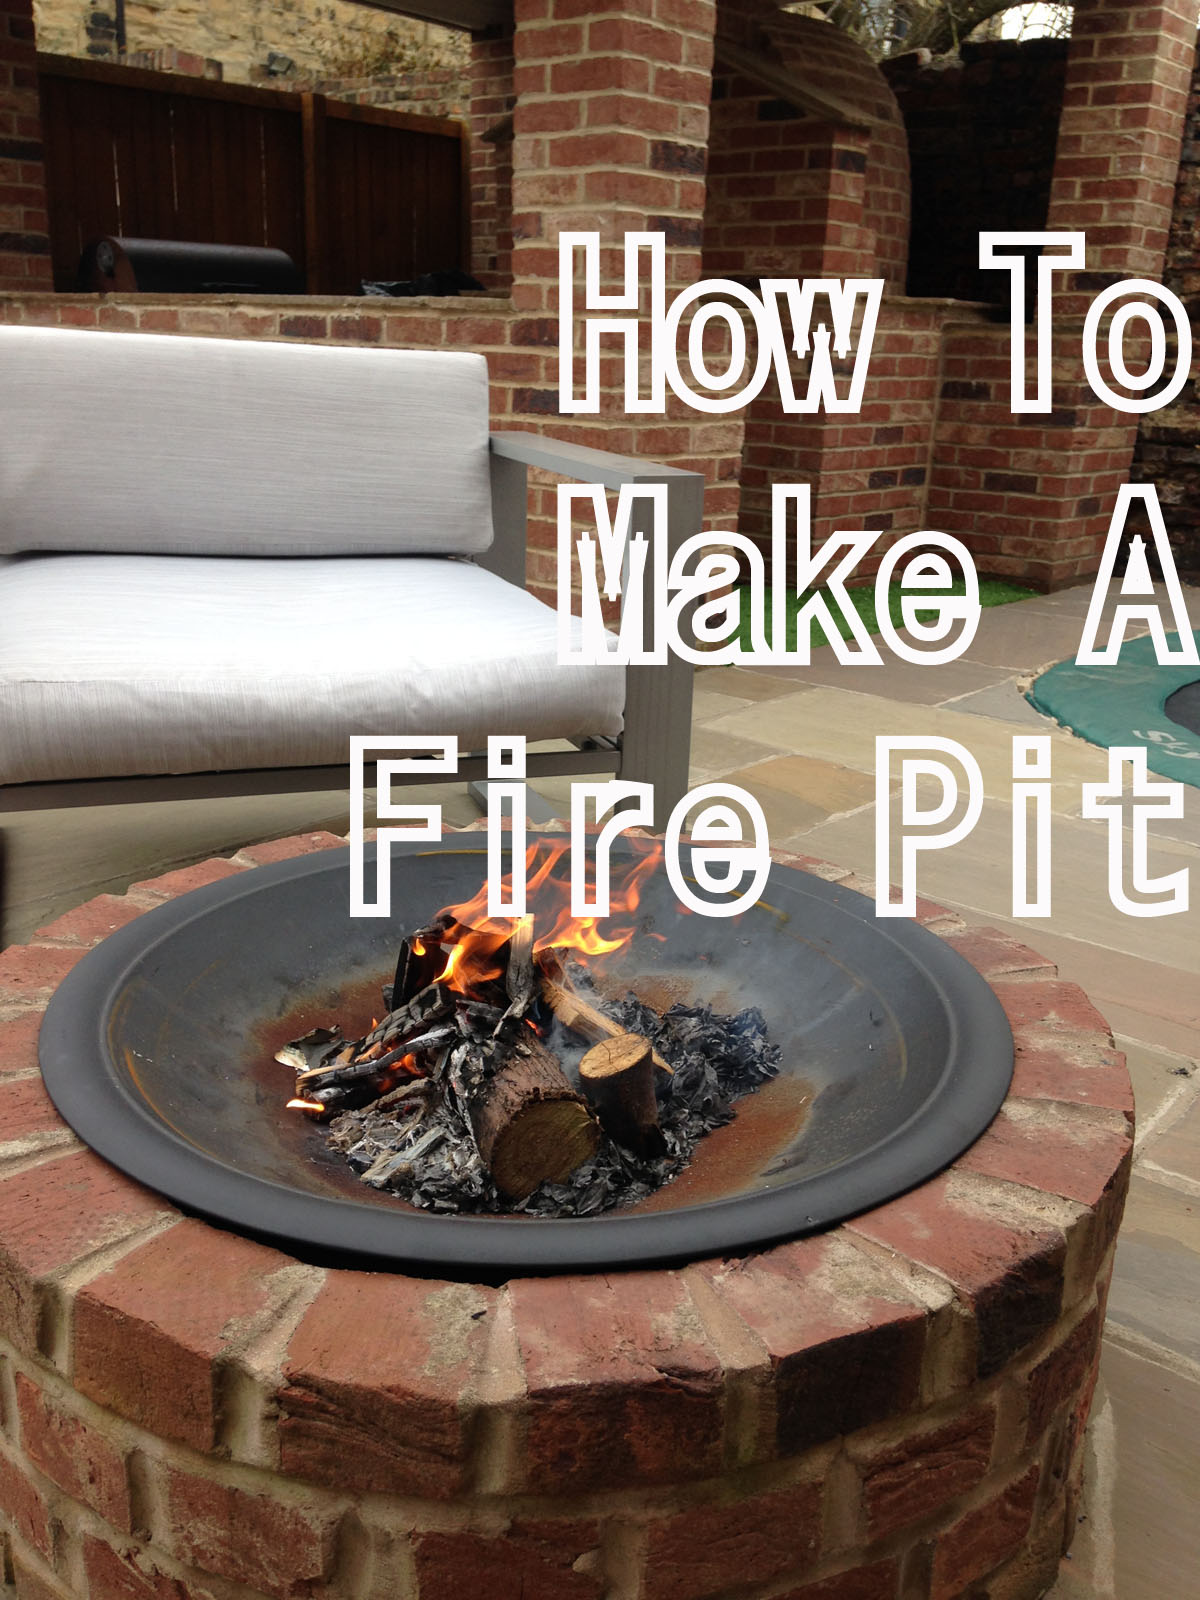 How to build a fire pit jugglemum for How to build a round fire pit